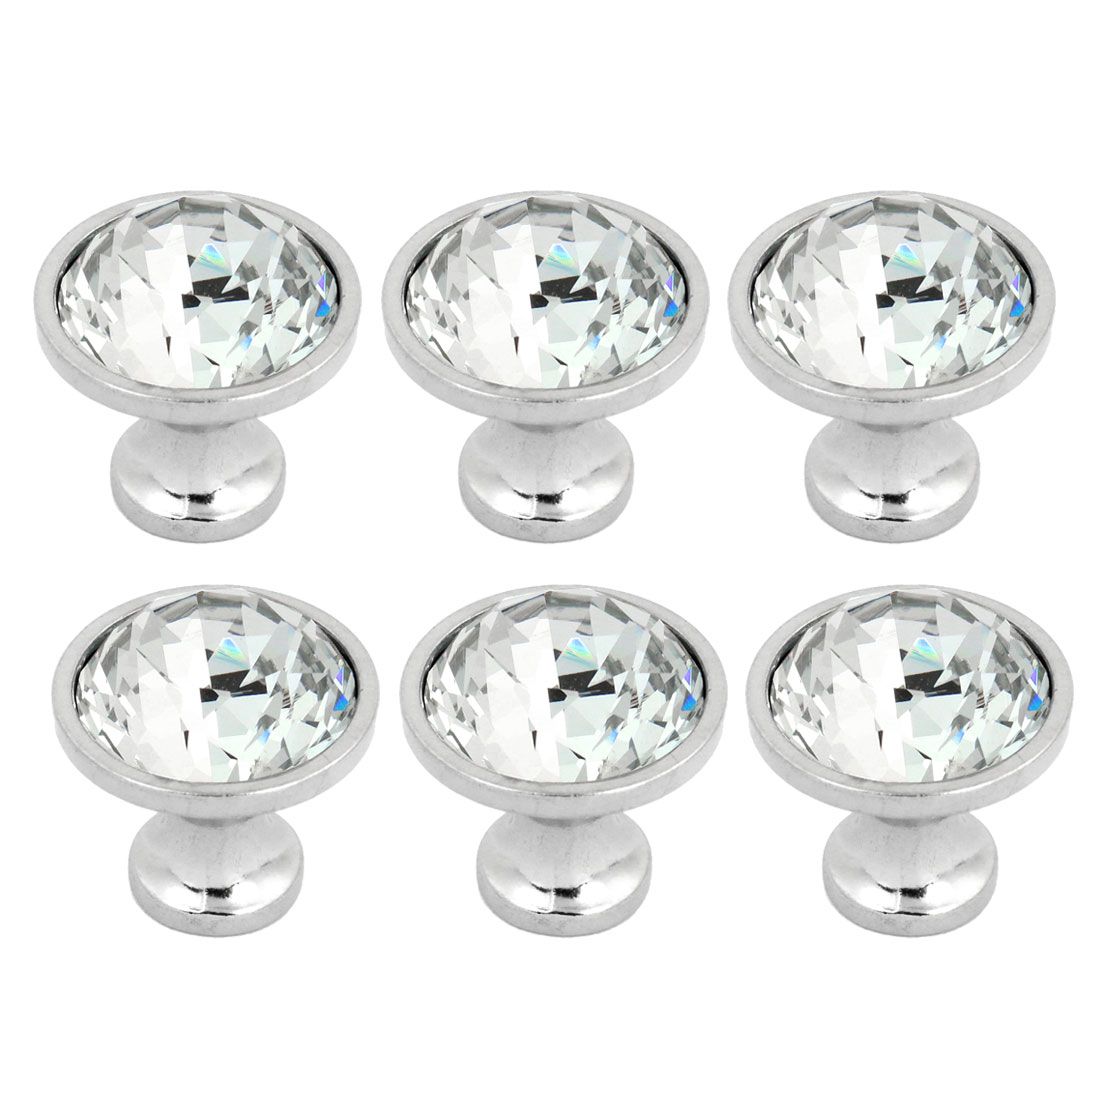 Bling Faux Crystal Cupboard Dresser Door Pull Handle Round Knob 6 Pcs